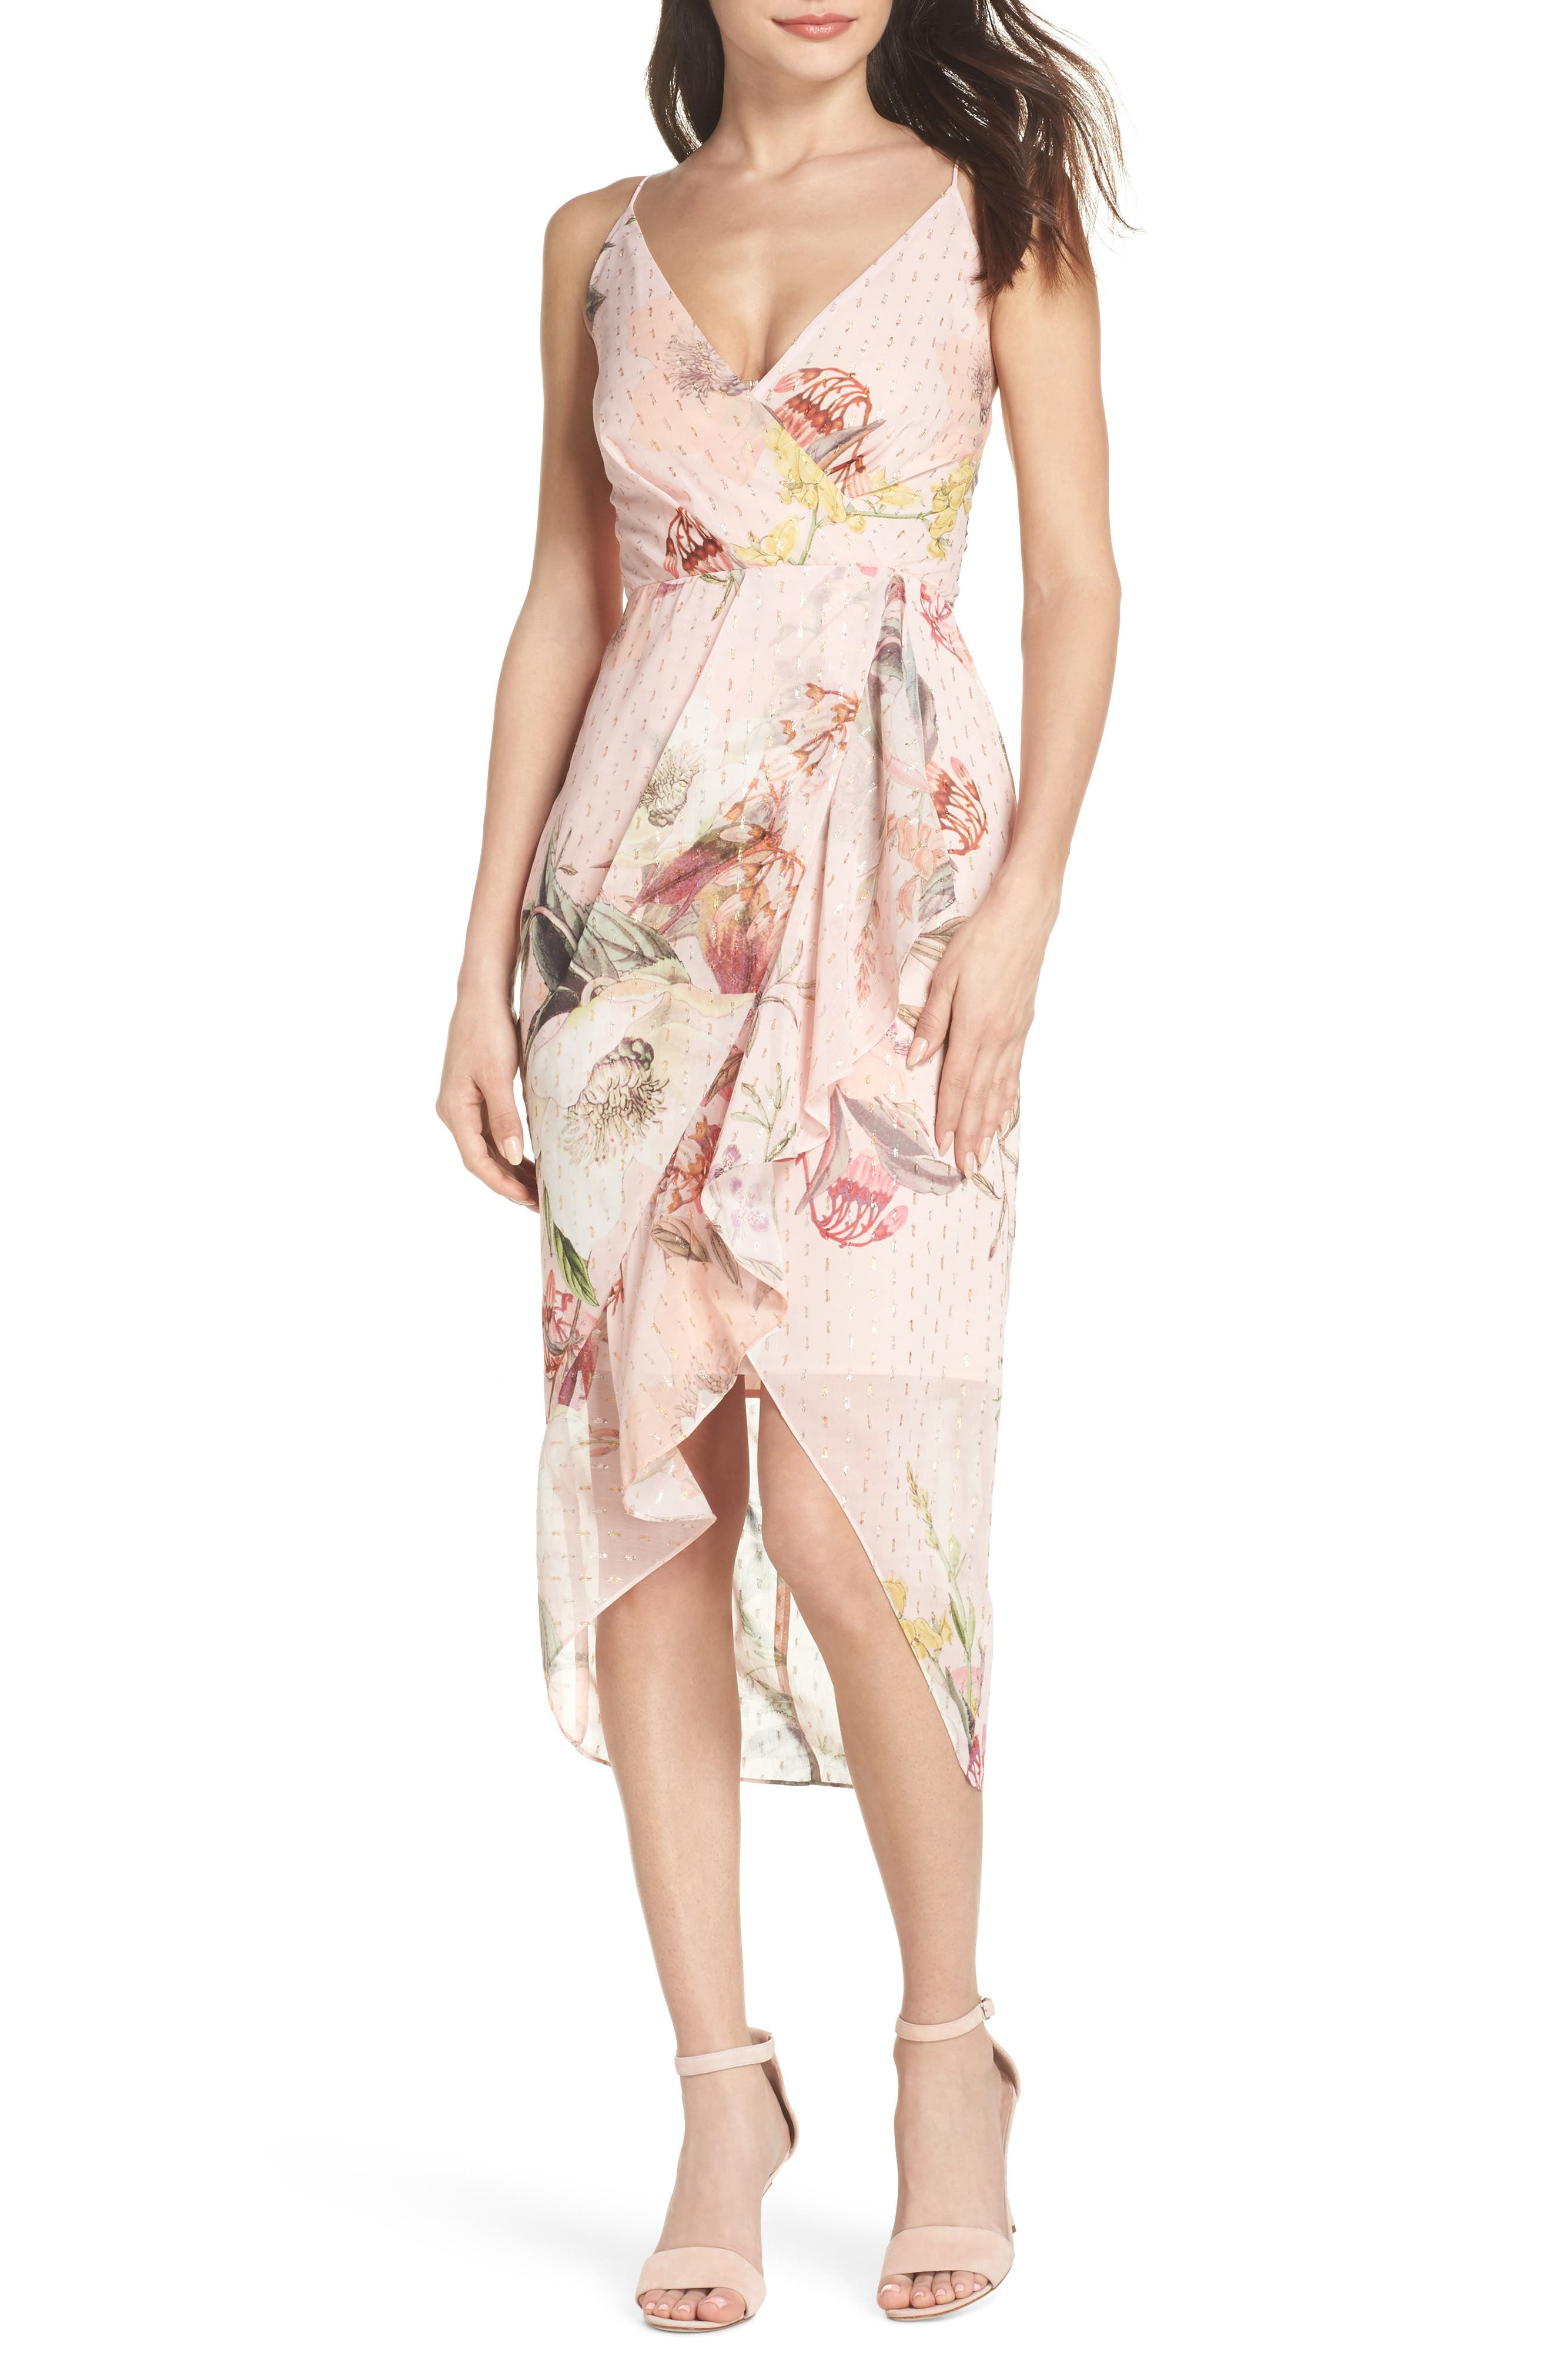 Cooper St. Flora Fade Drape Dress